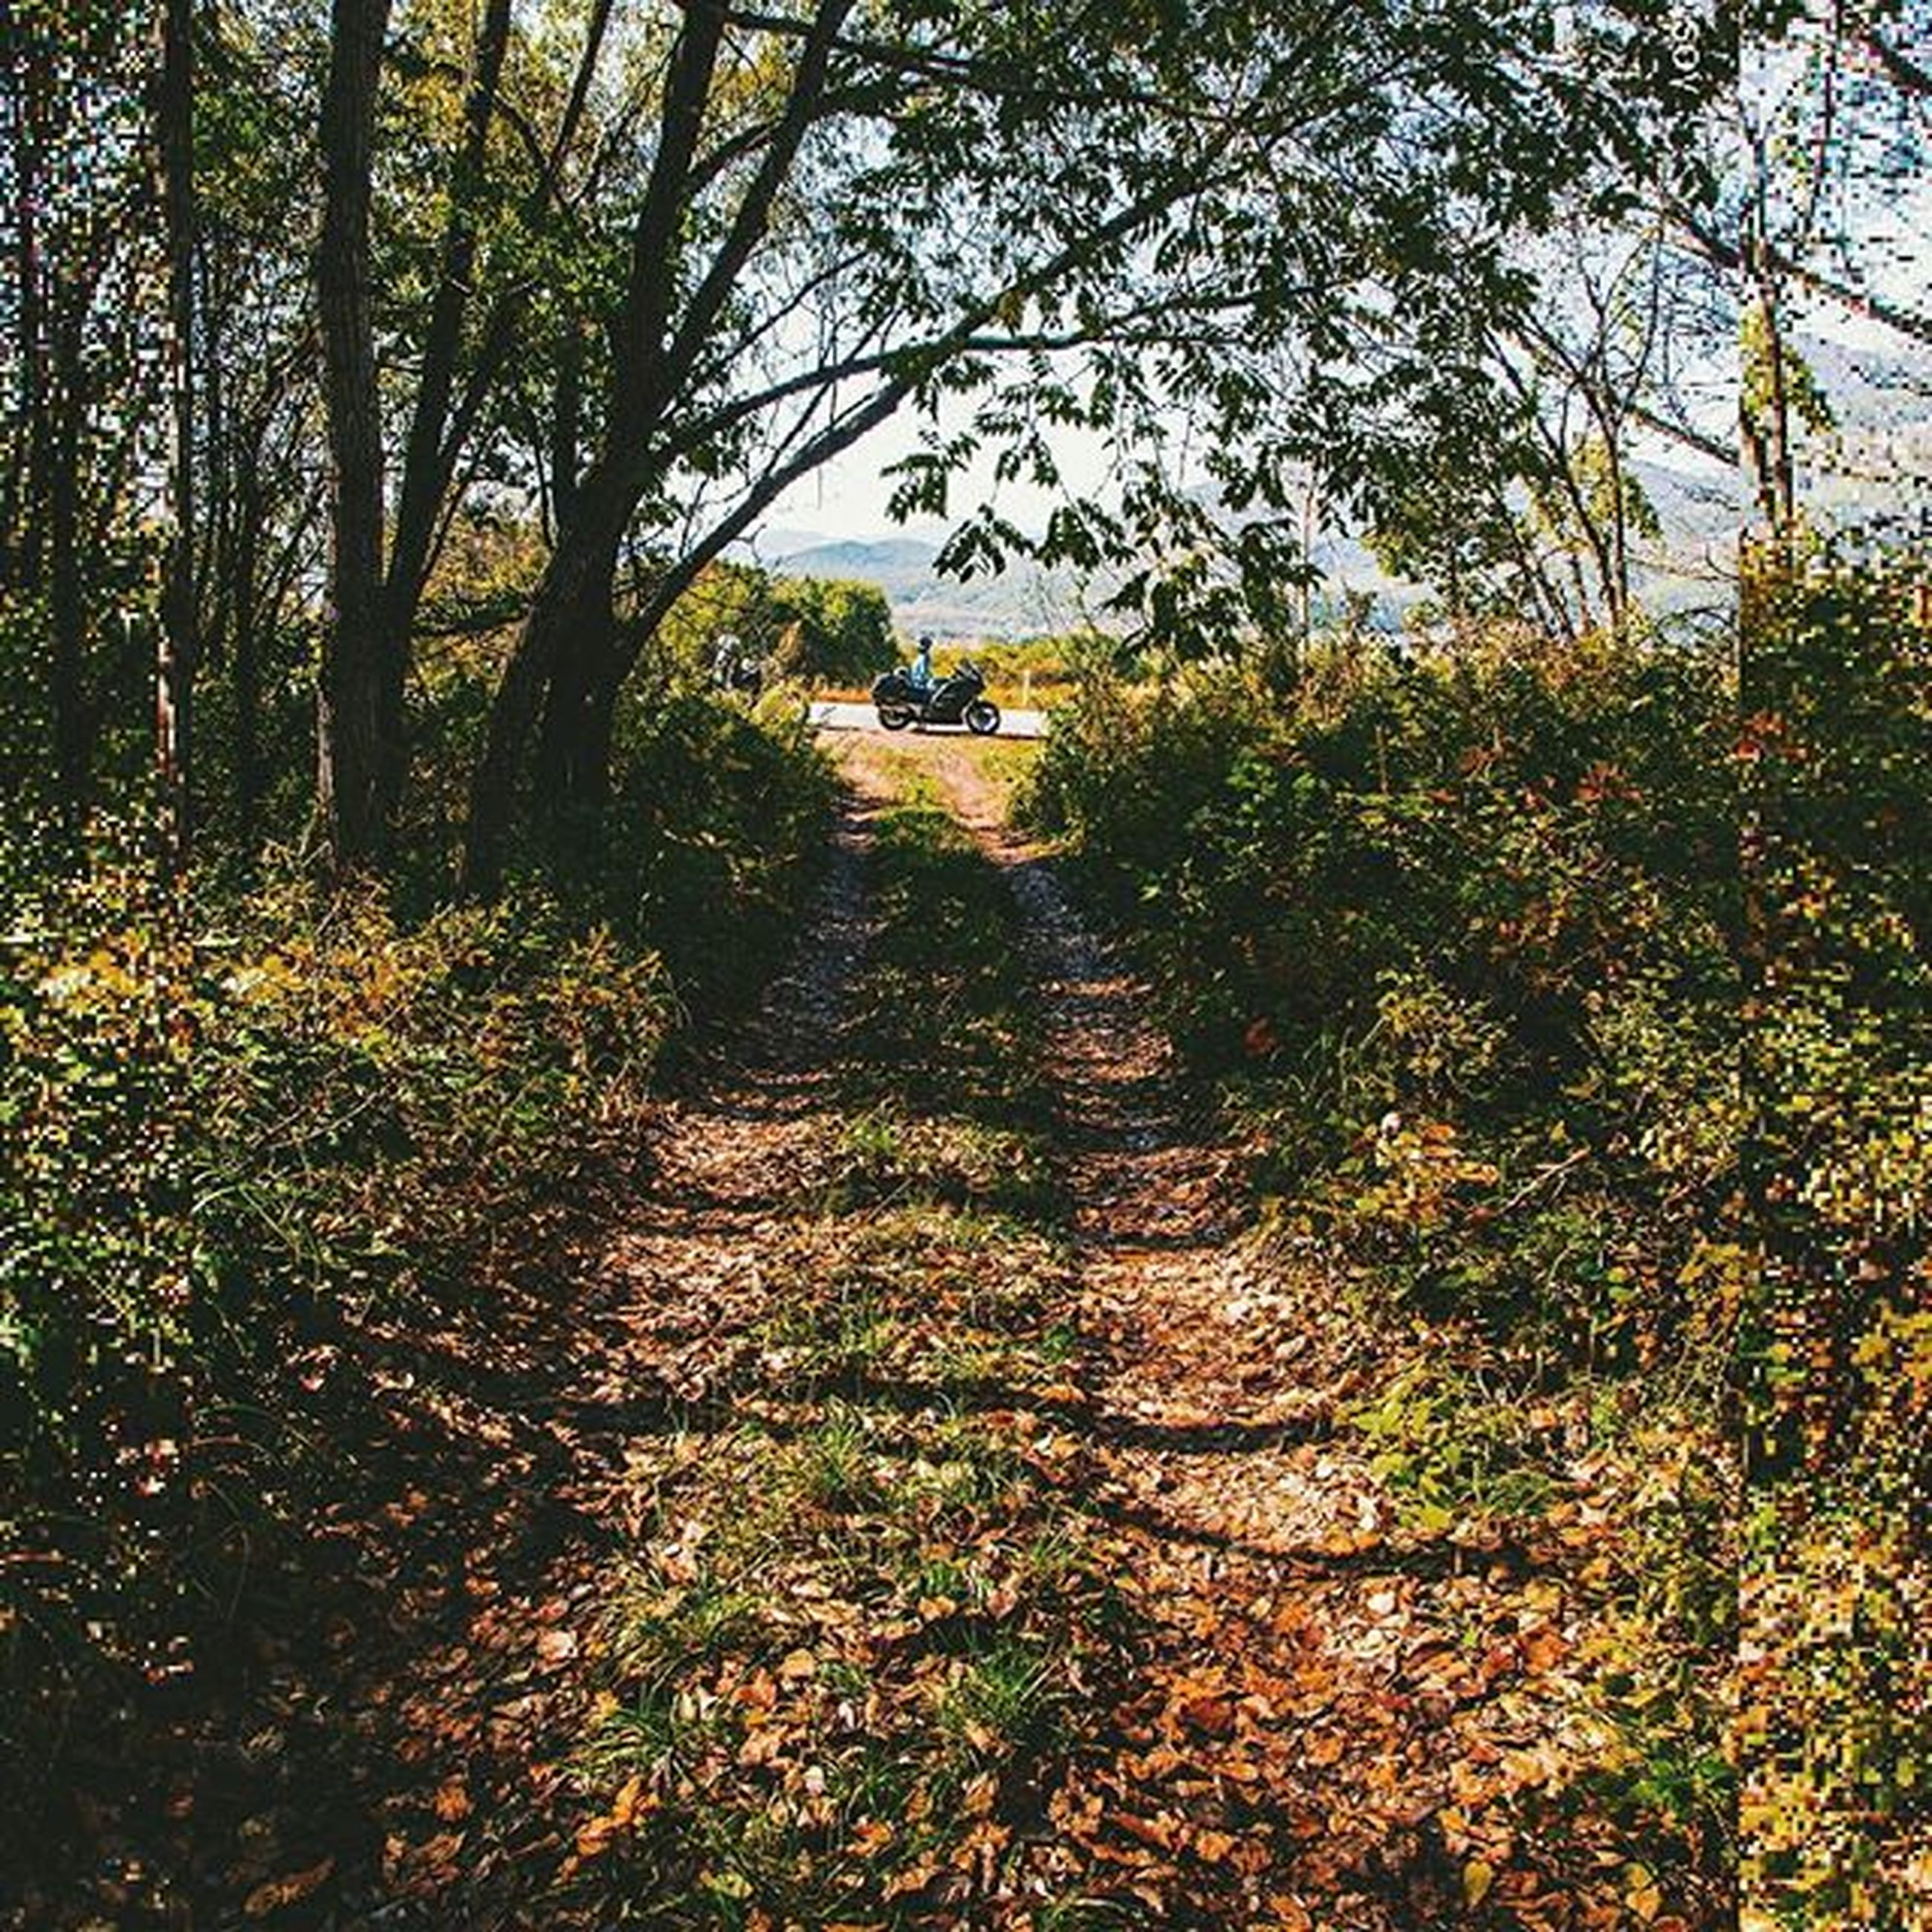 tree, the way forward, growth, dirt road, tranquility, footpath, nature, diminishing perspective, pathway, tranquil scene, plant, beauty in nature, vanishing point, branch, sunlight, walkway, outdoors, narrow, scenics, day